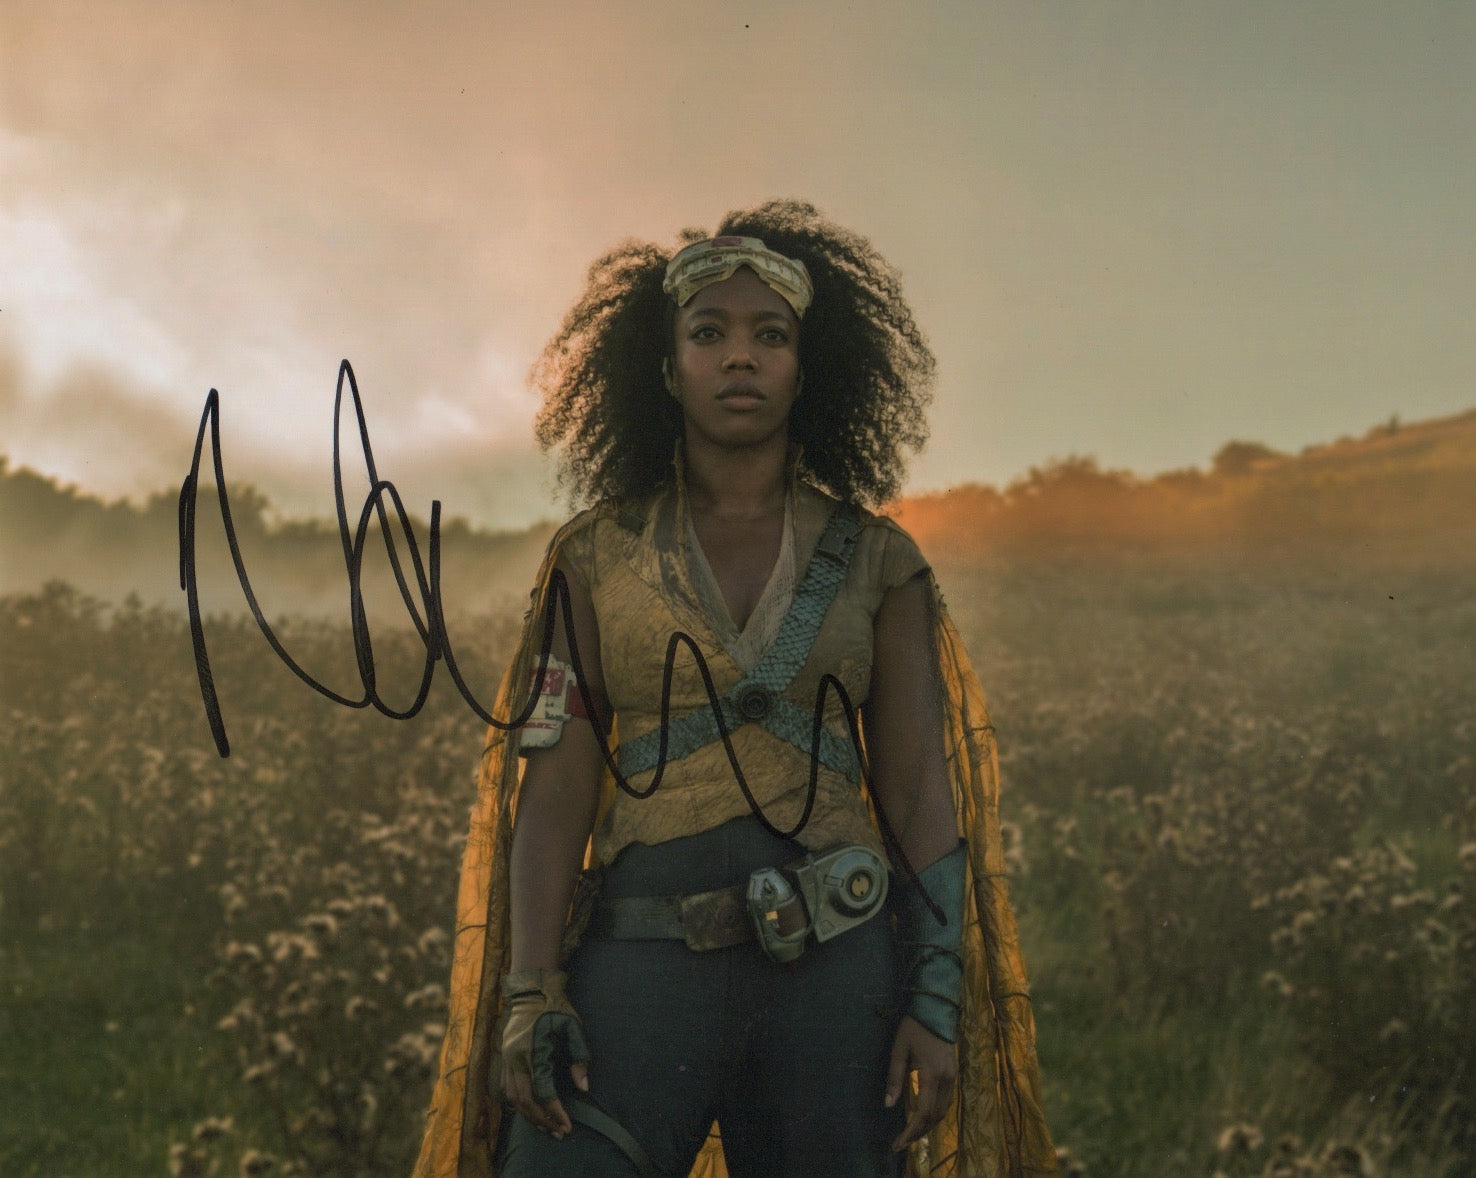 Naomi Ackie Star Wars Signed Autograph 8x10 Photo - Outlaw Hobbies Authentic Autographs